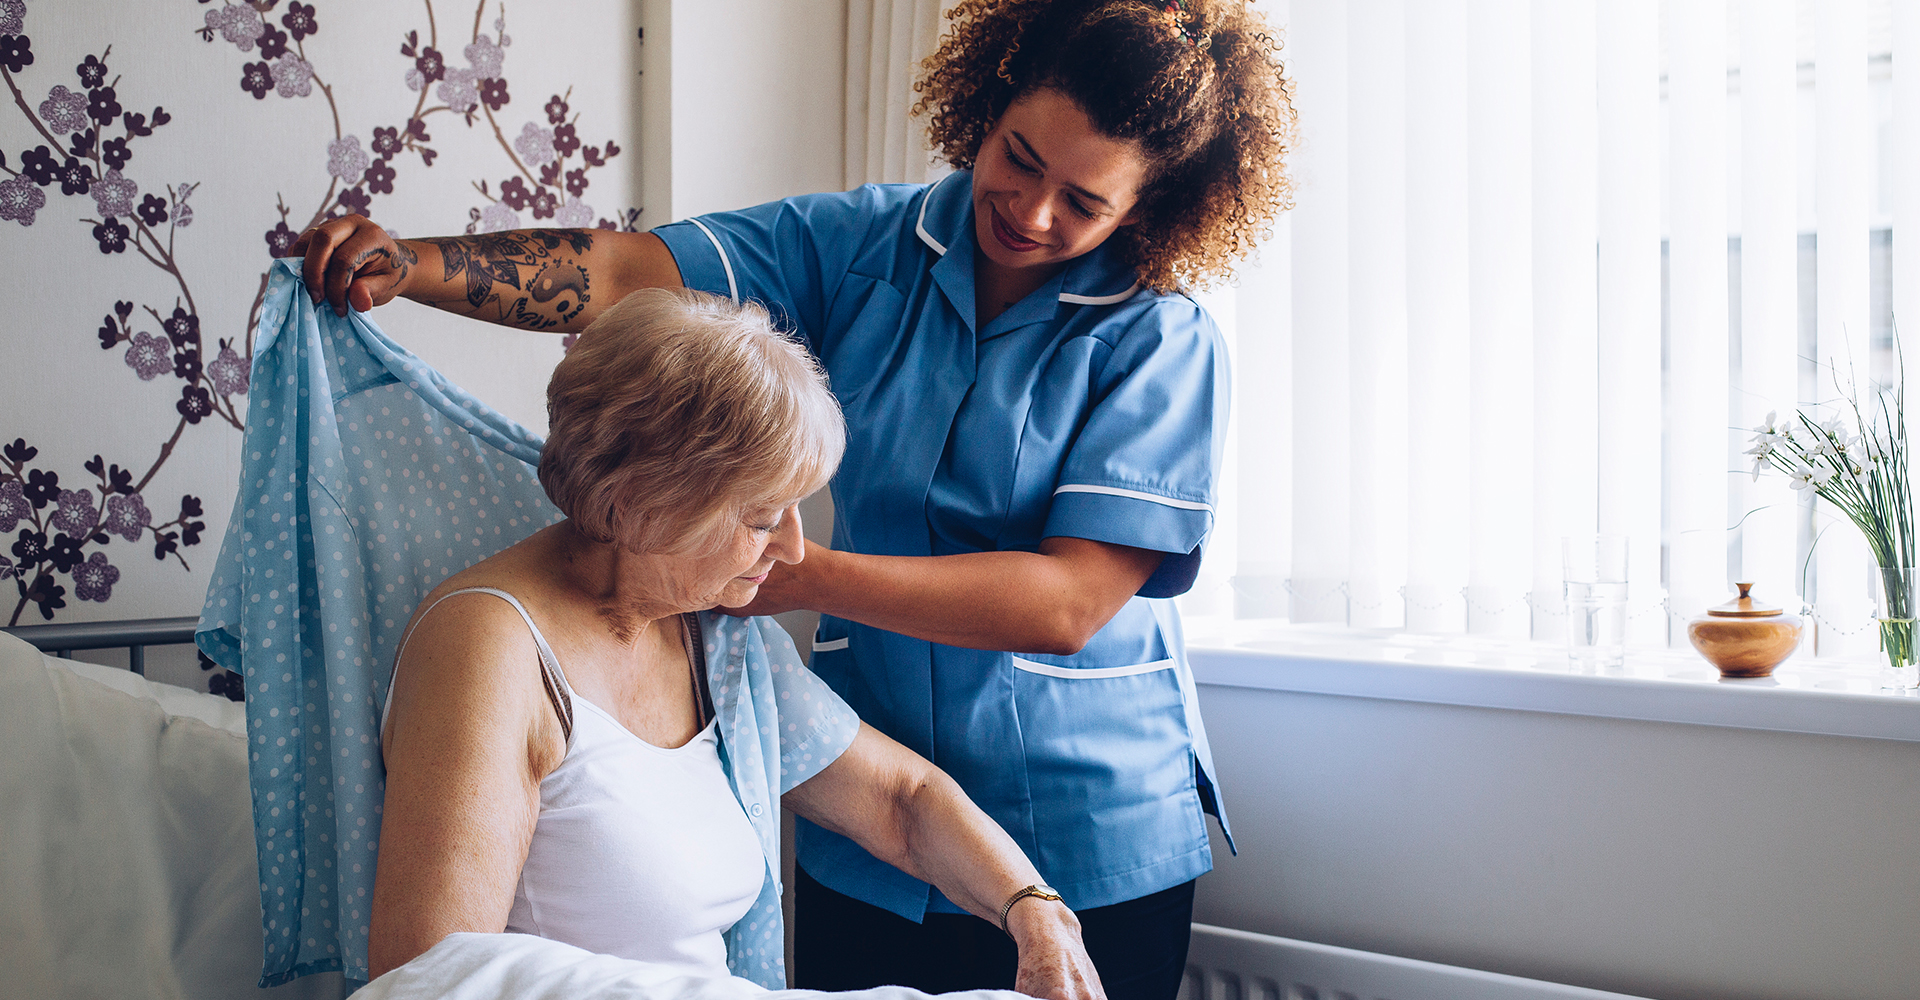 Residential Care Homes and Nursing Homes